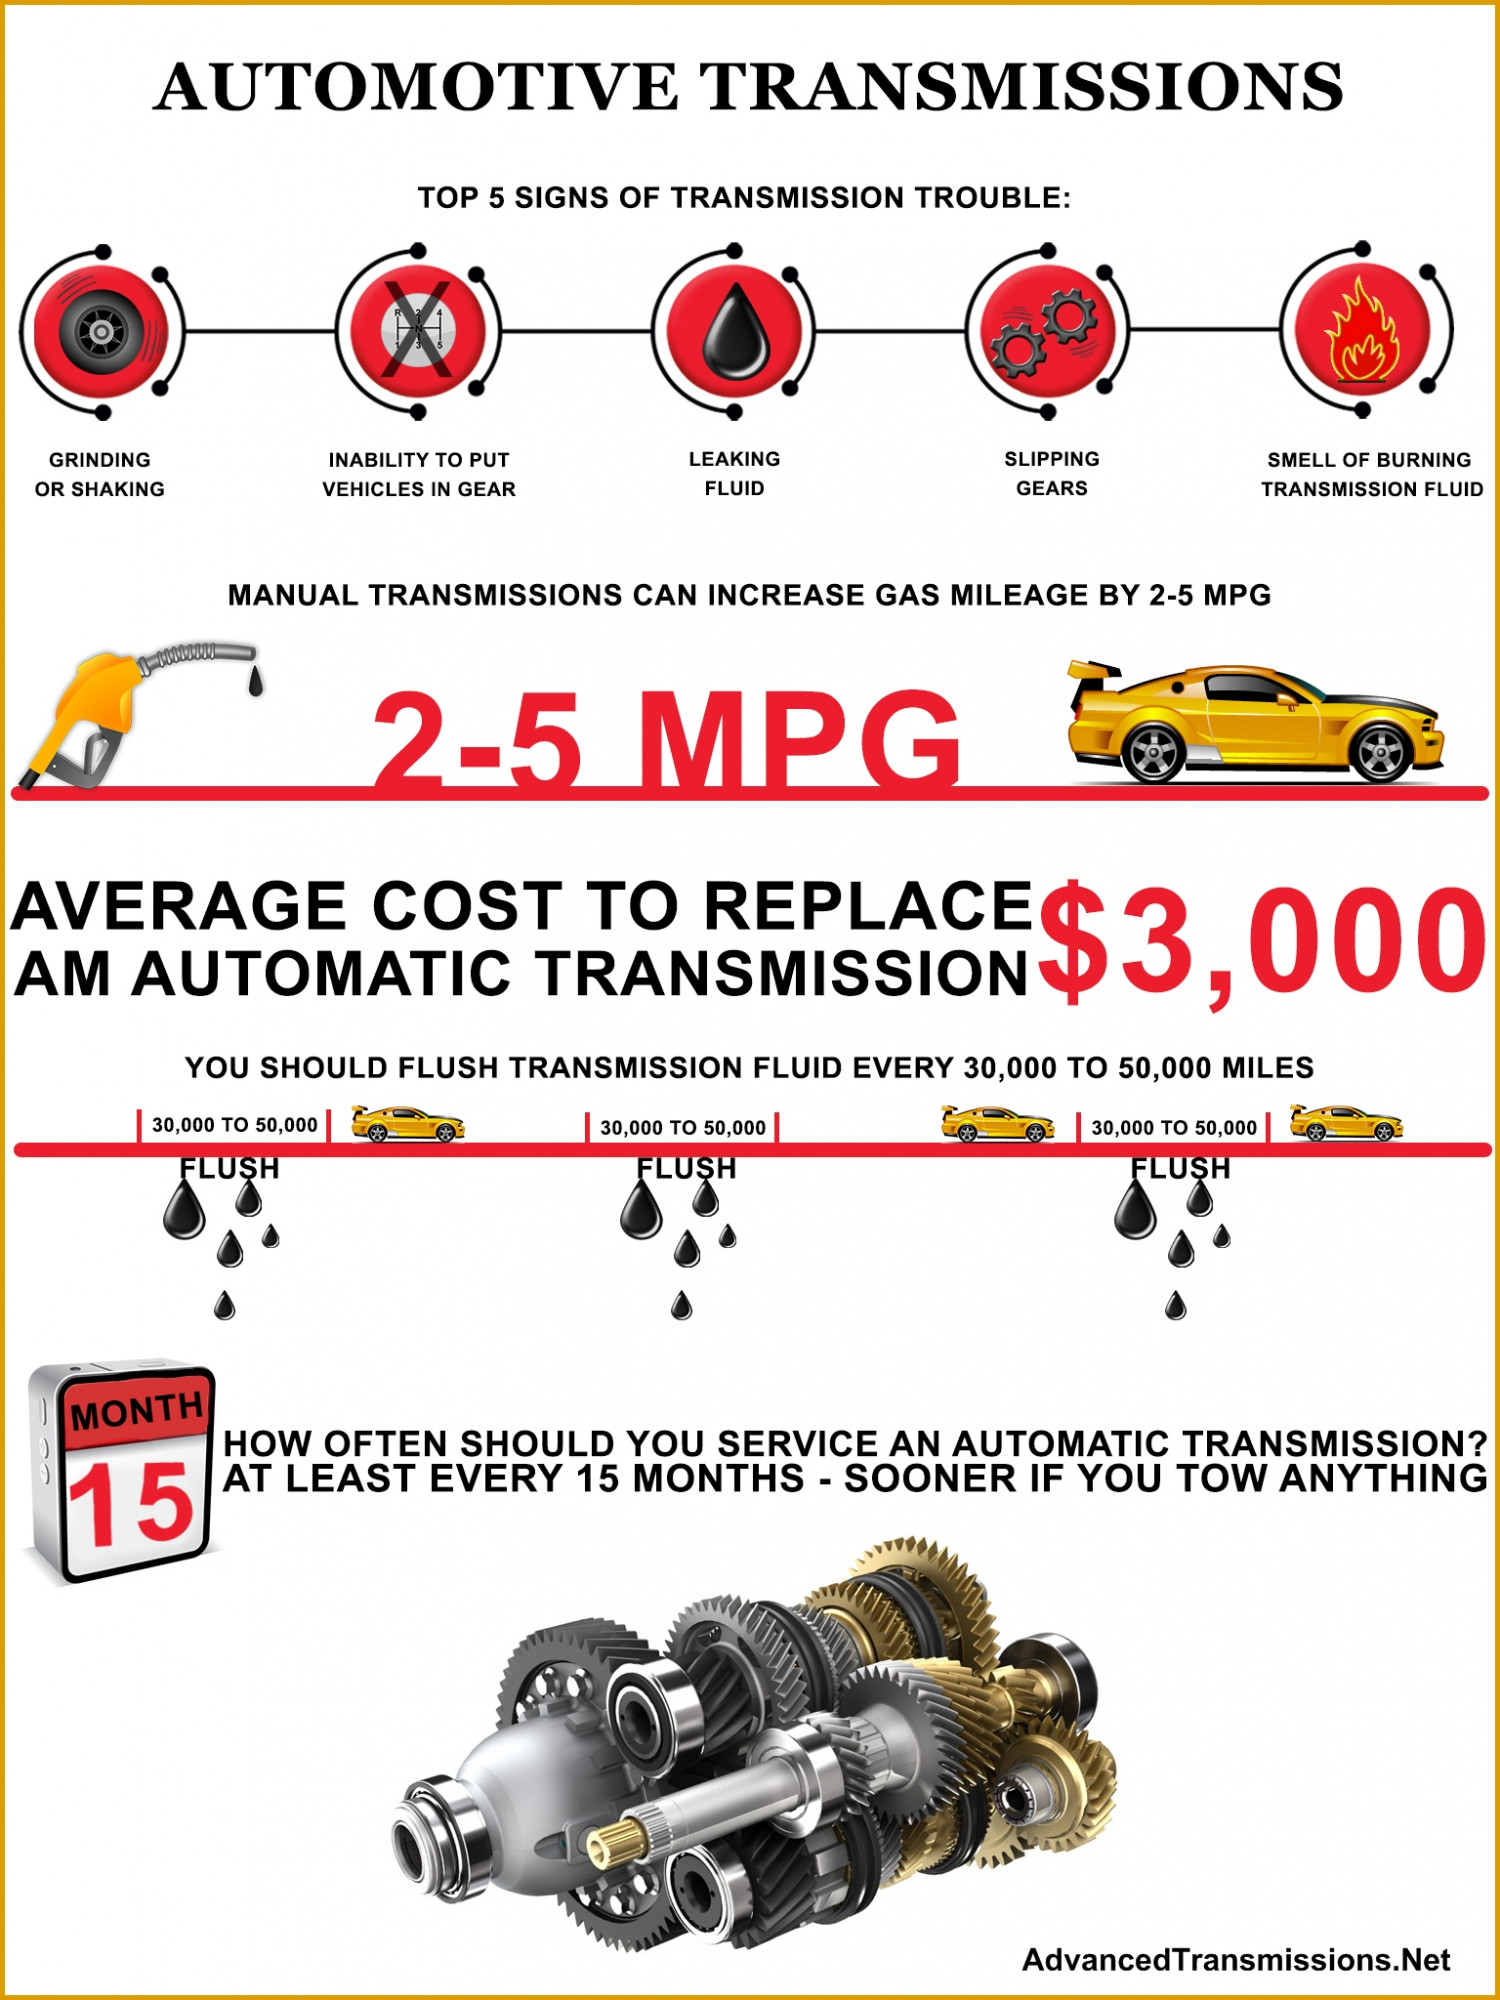 Automotive Transmissions  Infographic